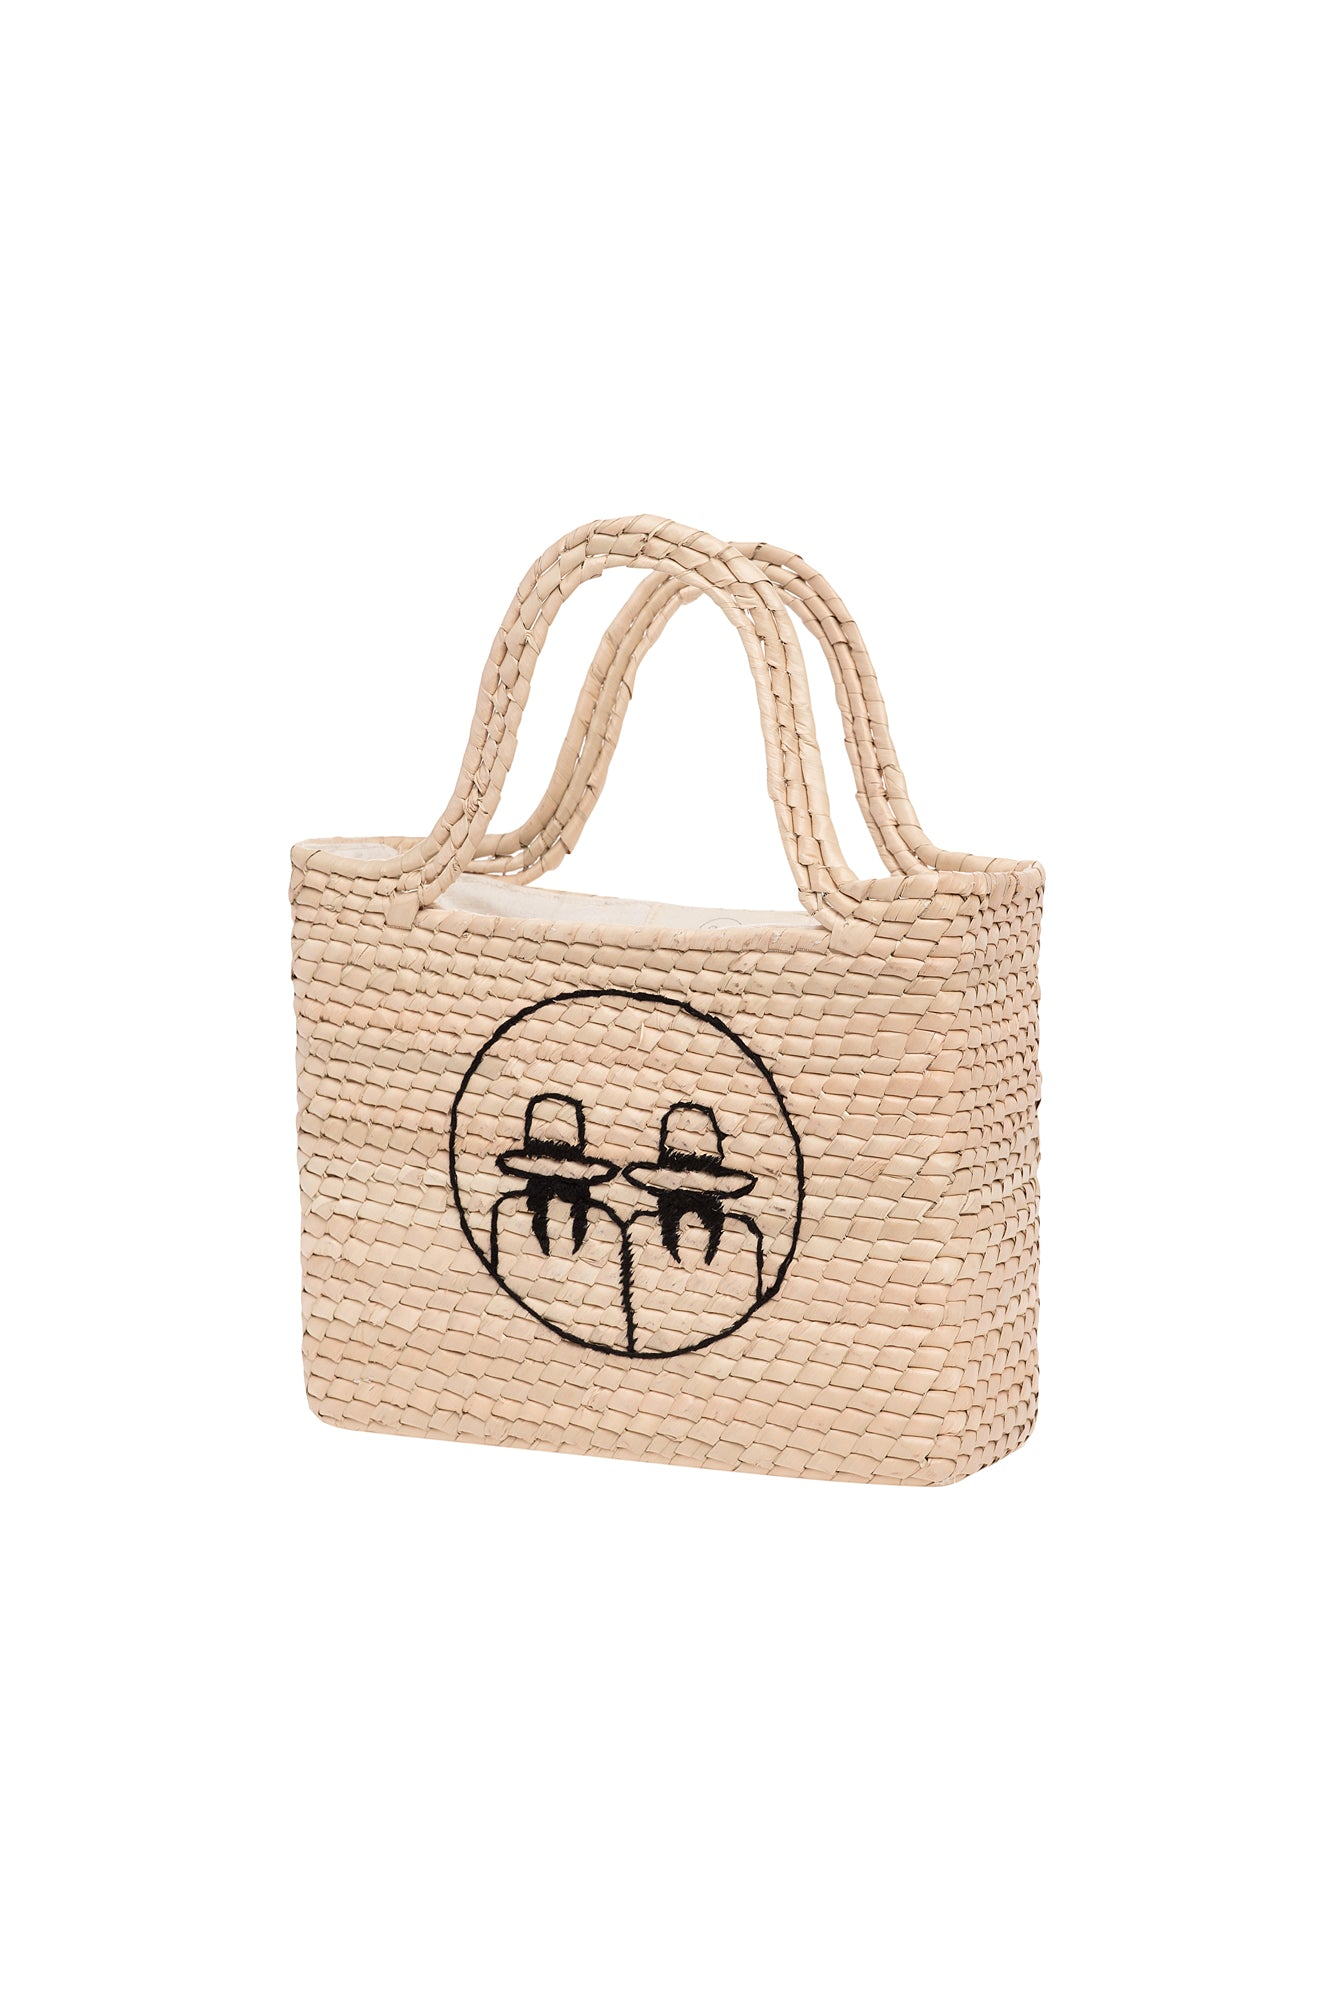 Carolina K Mini Cholitas Basket Bag Natural